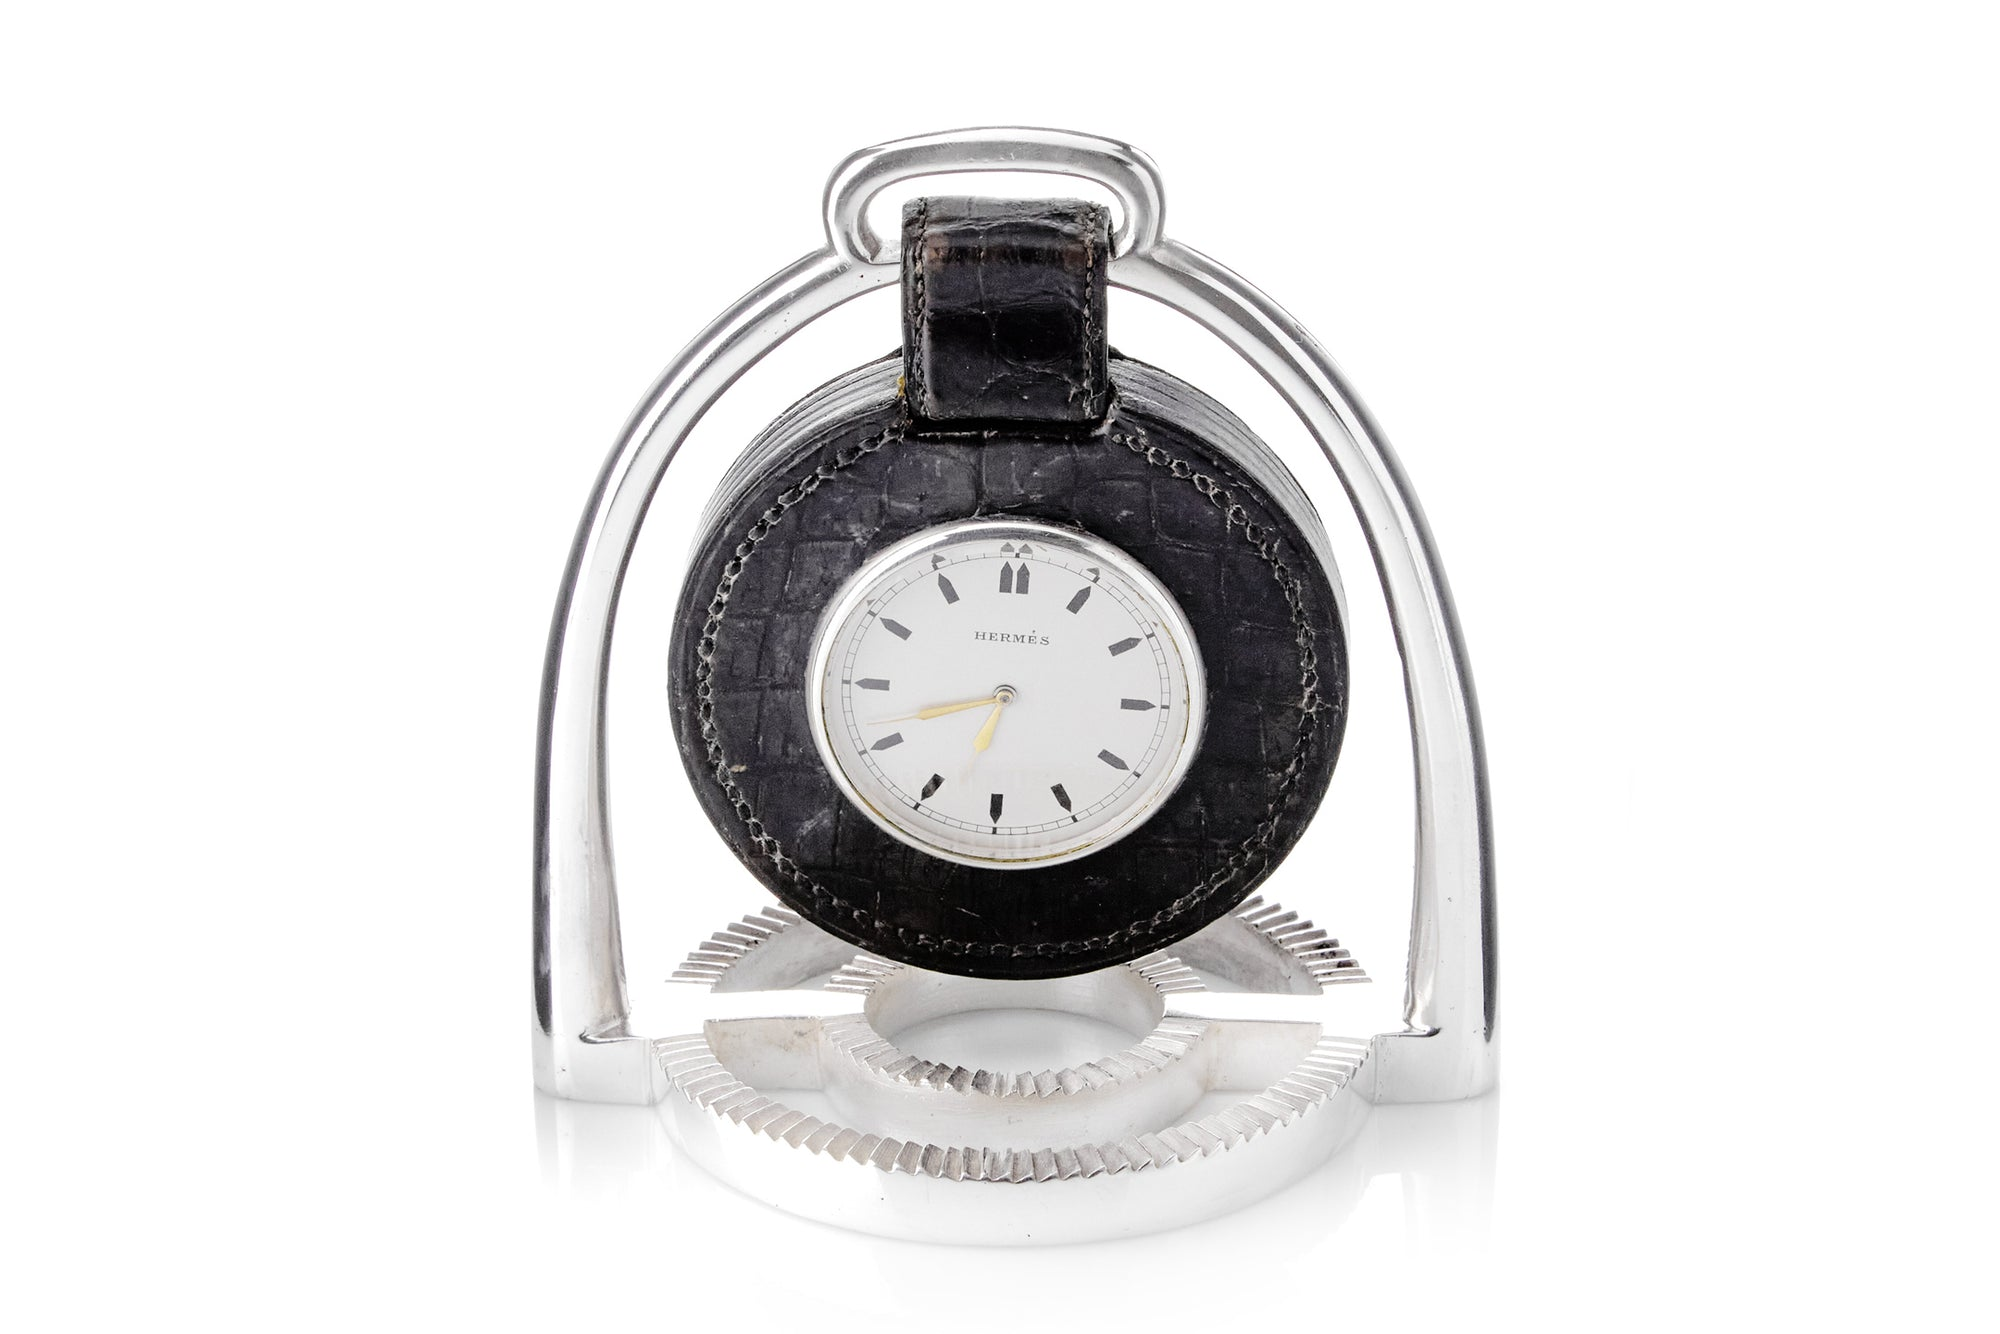 Hermes Alligator Table Clock